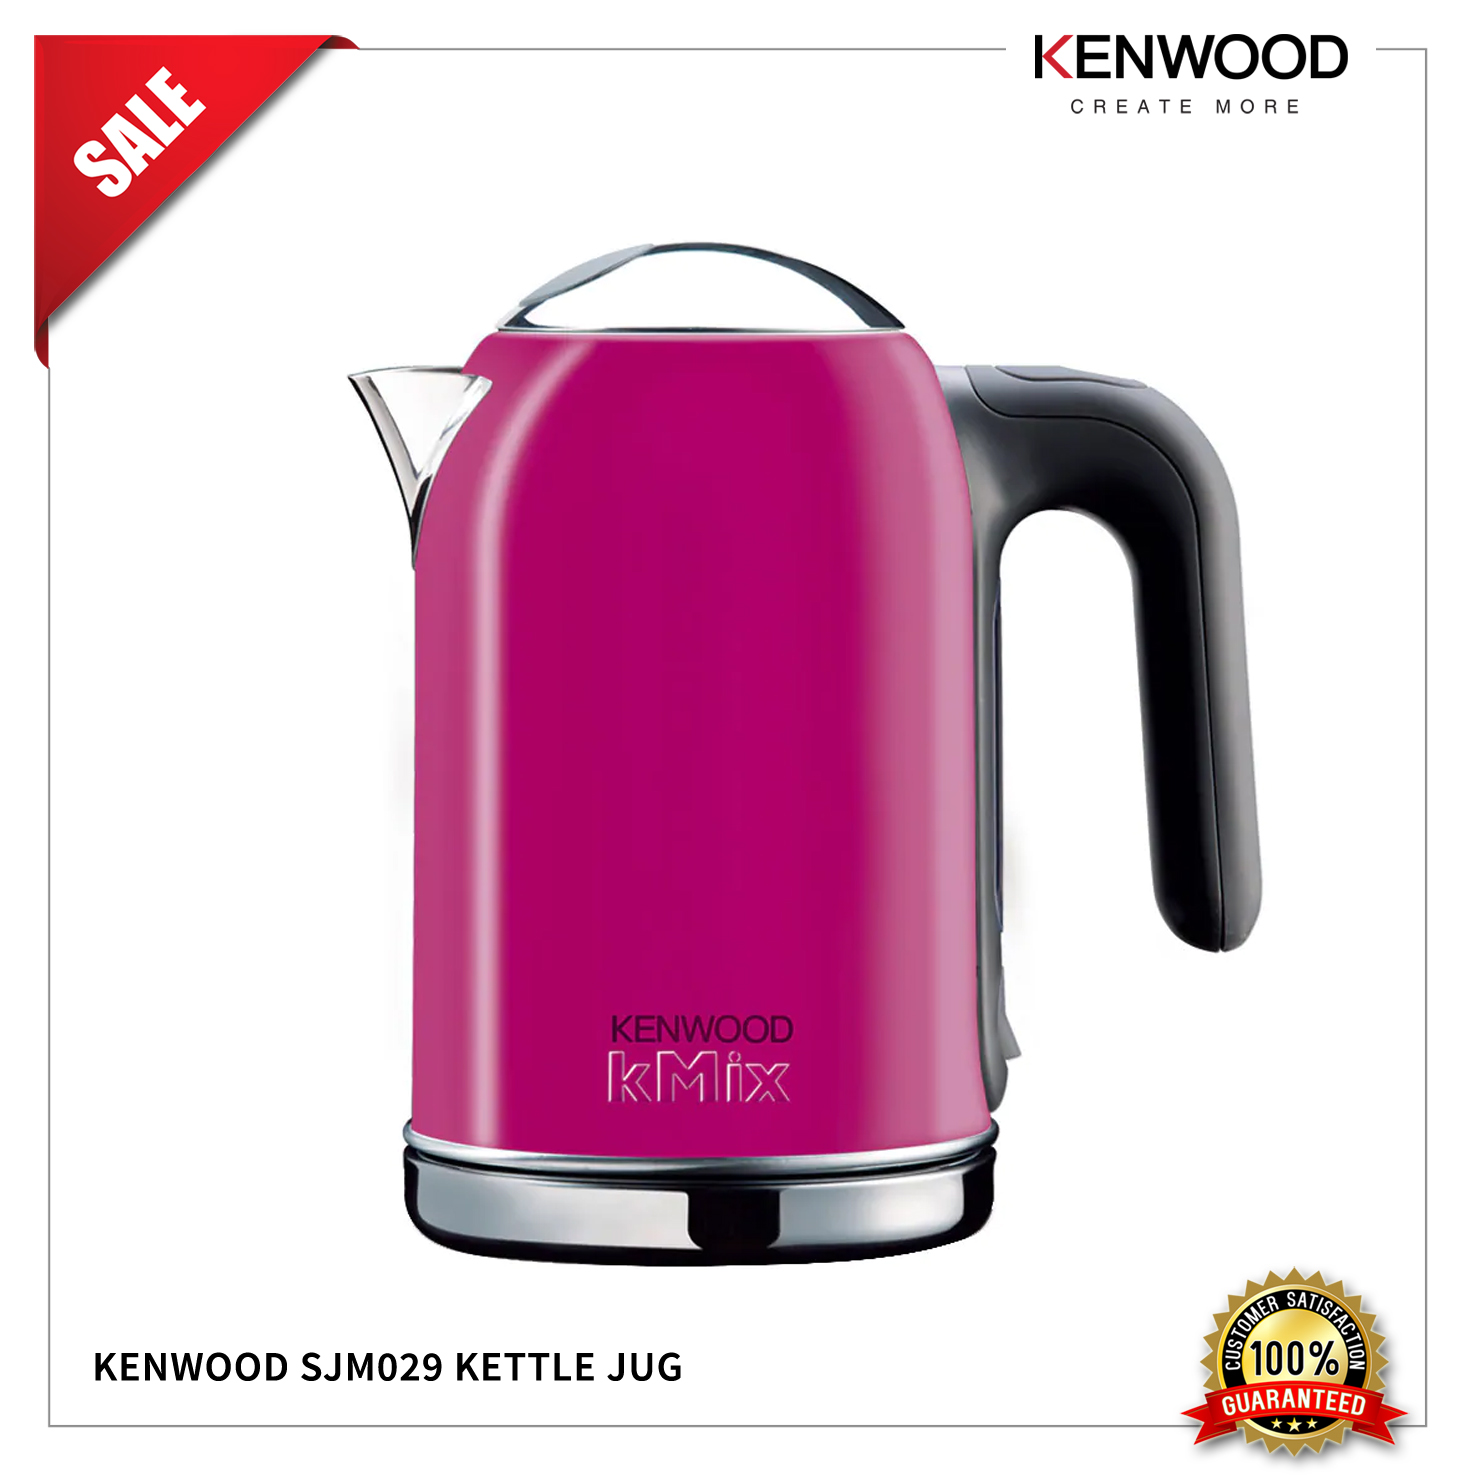 KENWOOD SJM029_KETTLEJUG – REVISI 1